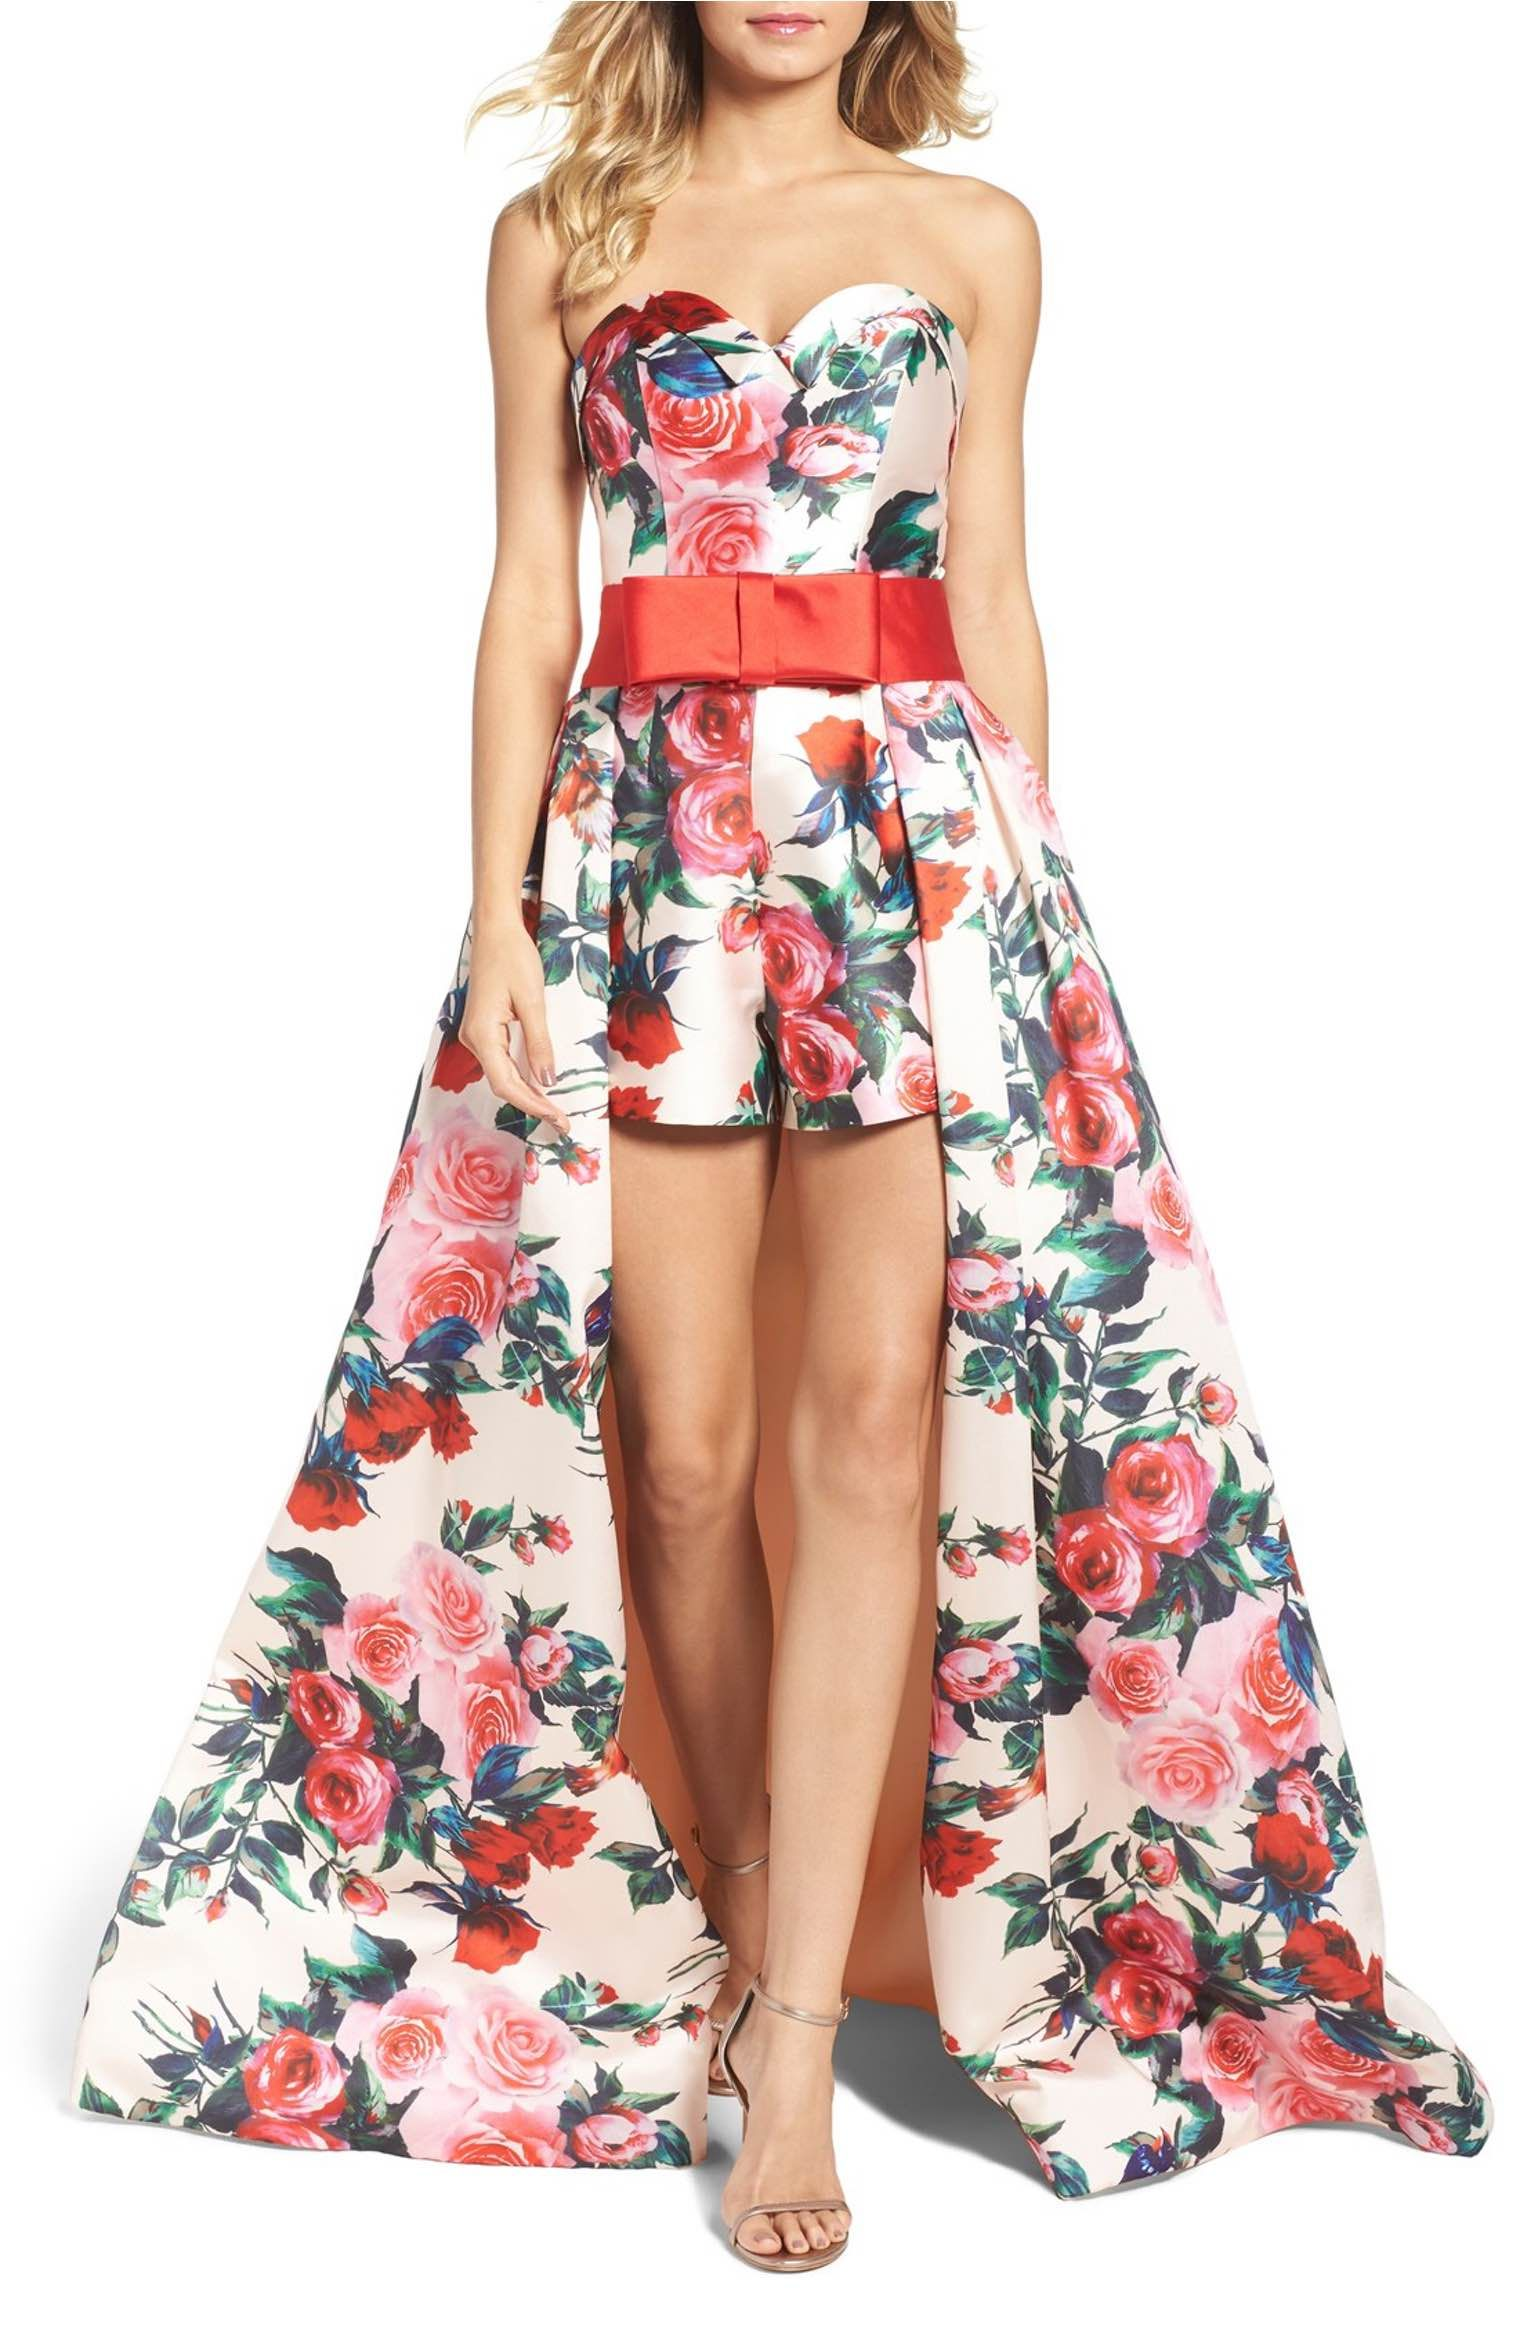 Main image mac duggal strapless romper with detachable ball skirt